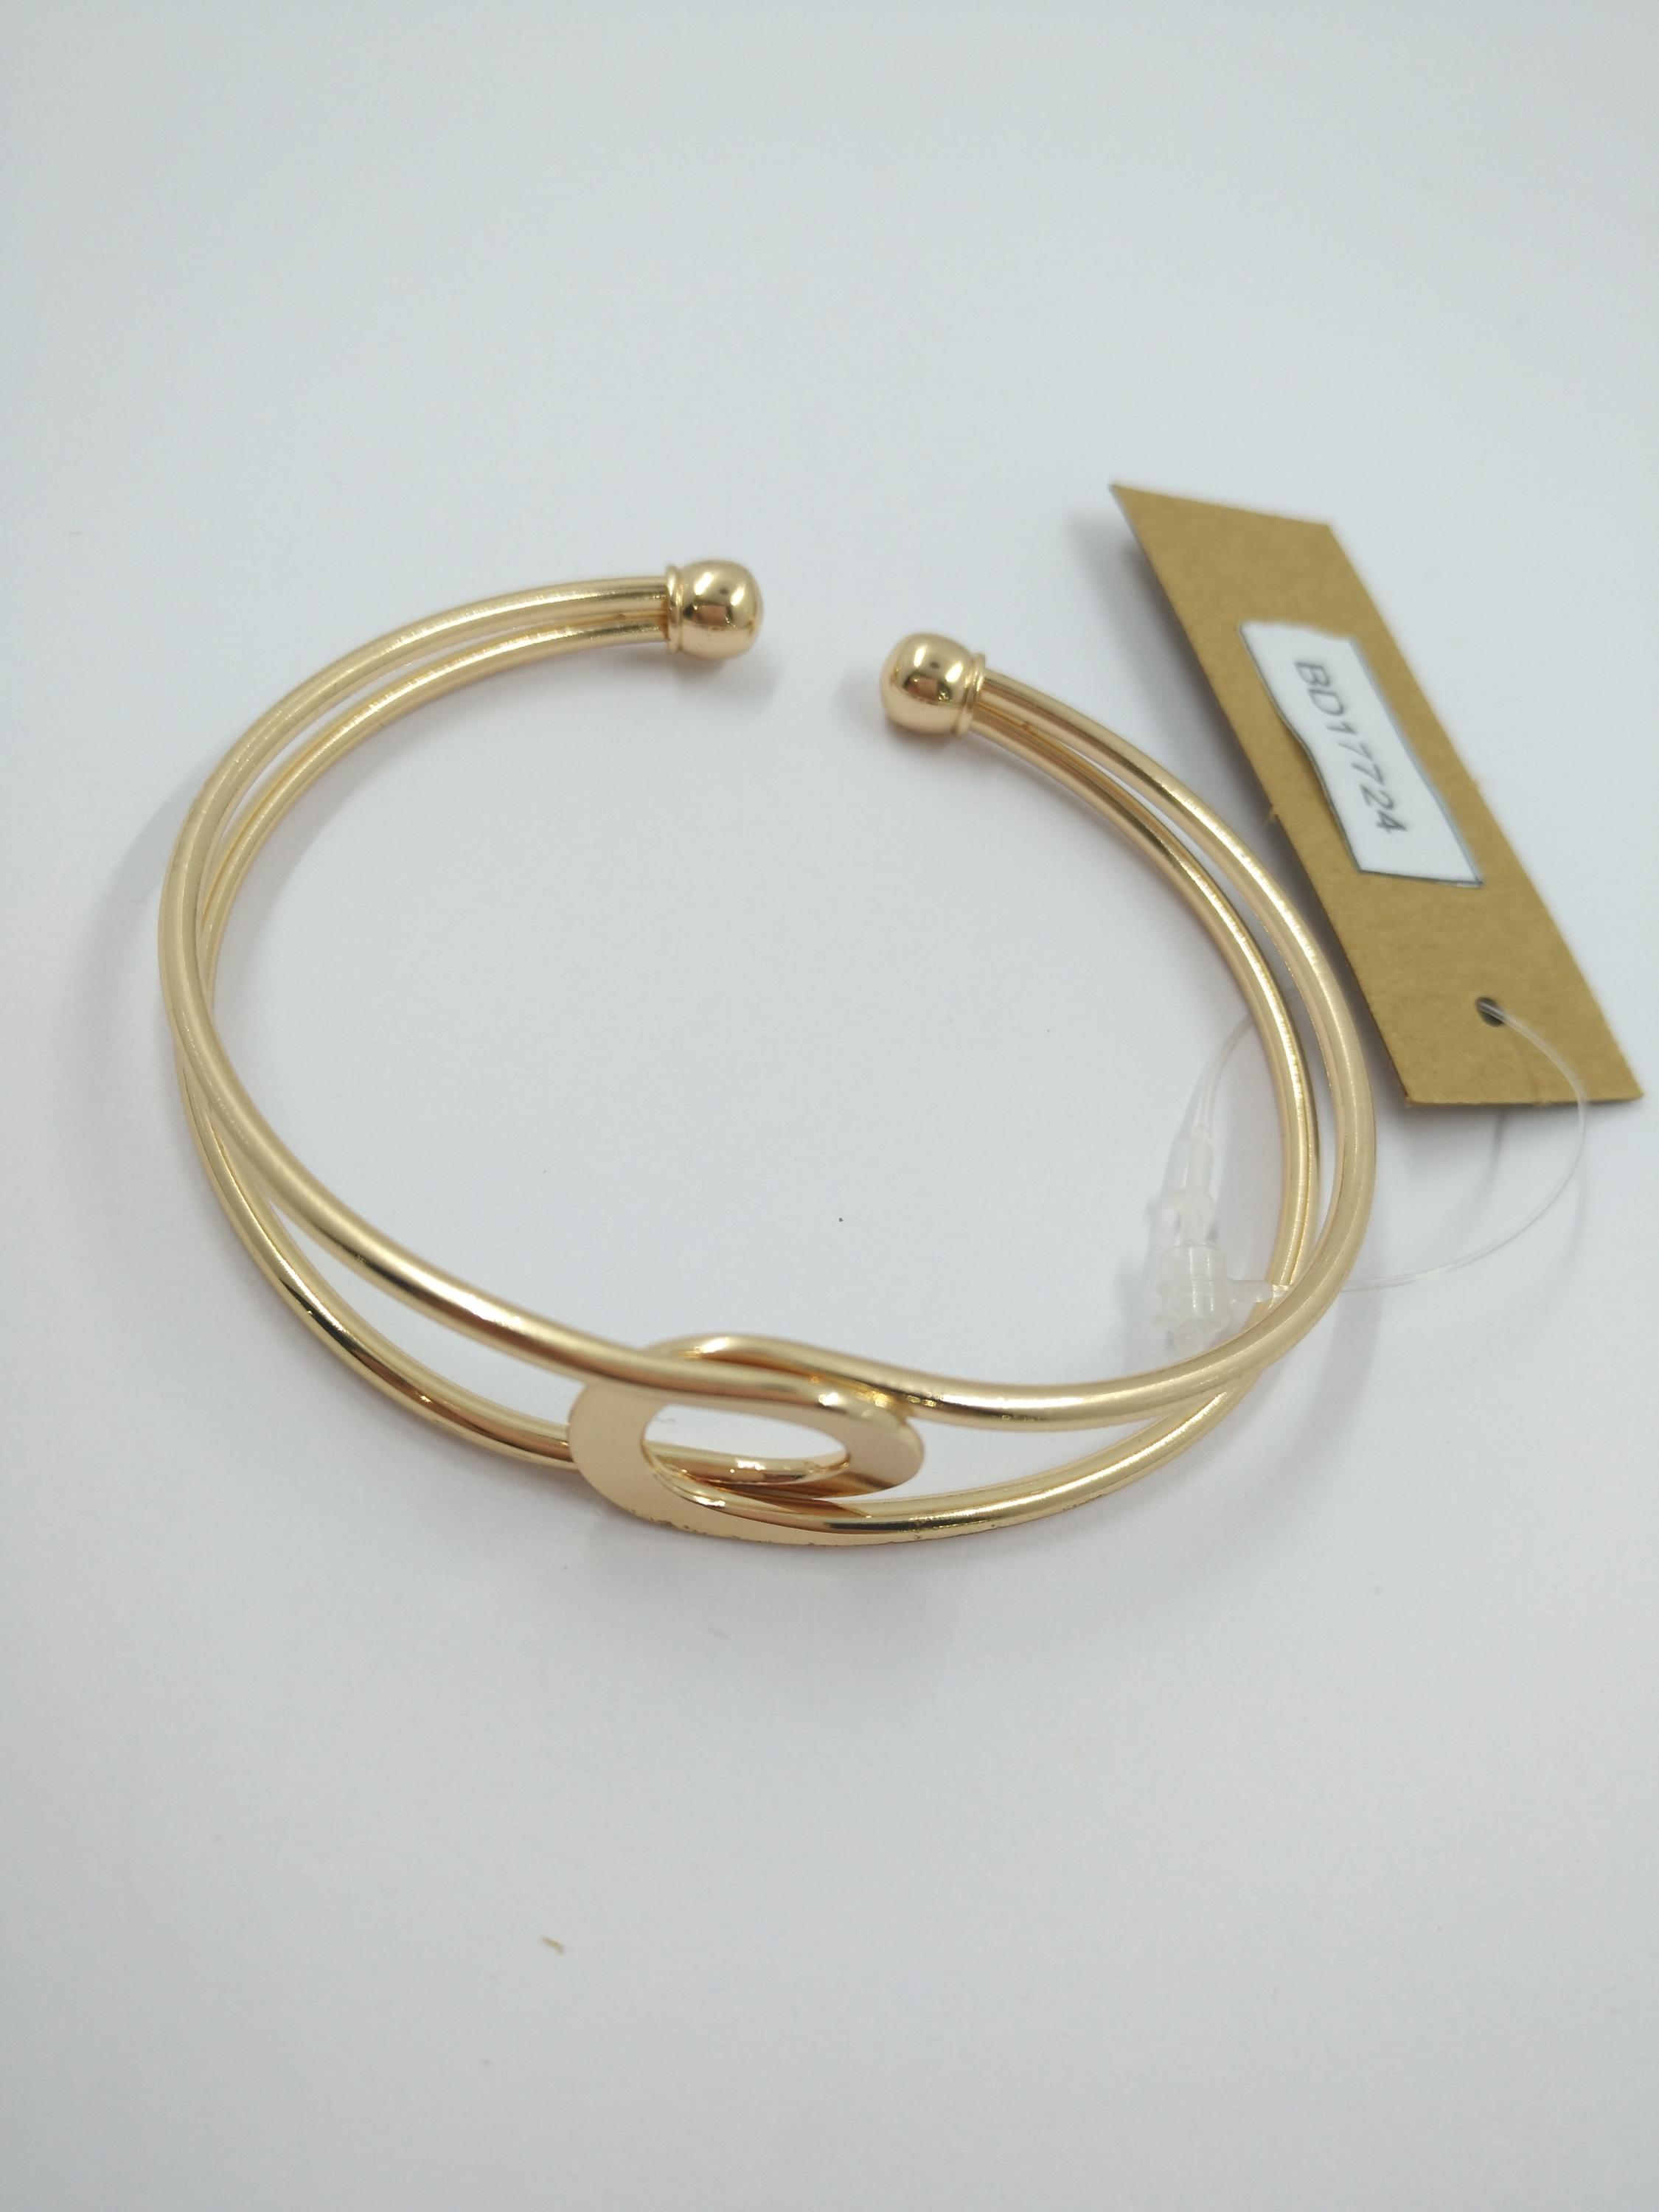 shop ladies bracelet gold length saltwater yellow design cage sku pearl